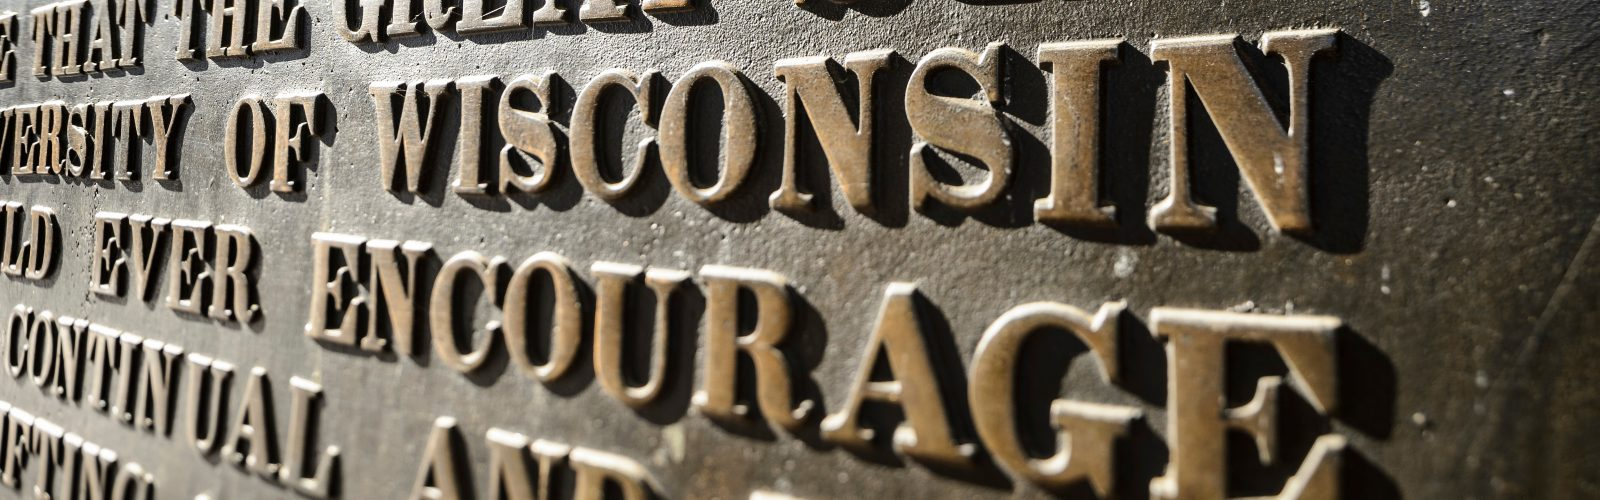 """On Jan. 16, 2018, the winter-morning sunlight shines upon a close-up view of the letters on the """"Sifting and Winnowing"""" plaque, mounted in the arched-portico of Bascom Hall at the University of Wisconsin-Madison. The photograph was made using a tilt/shift-focus lens. (Photo by Jeff Miller / UW-Madison)"""